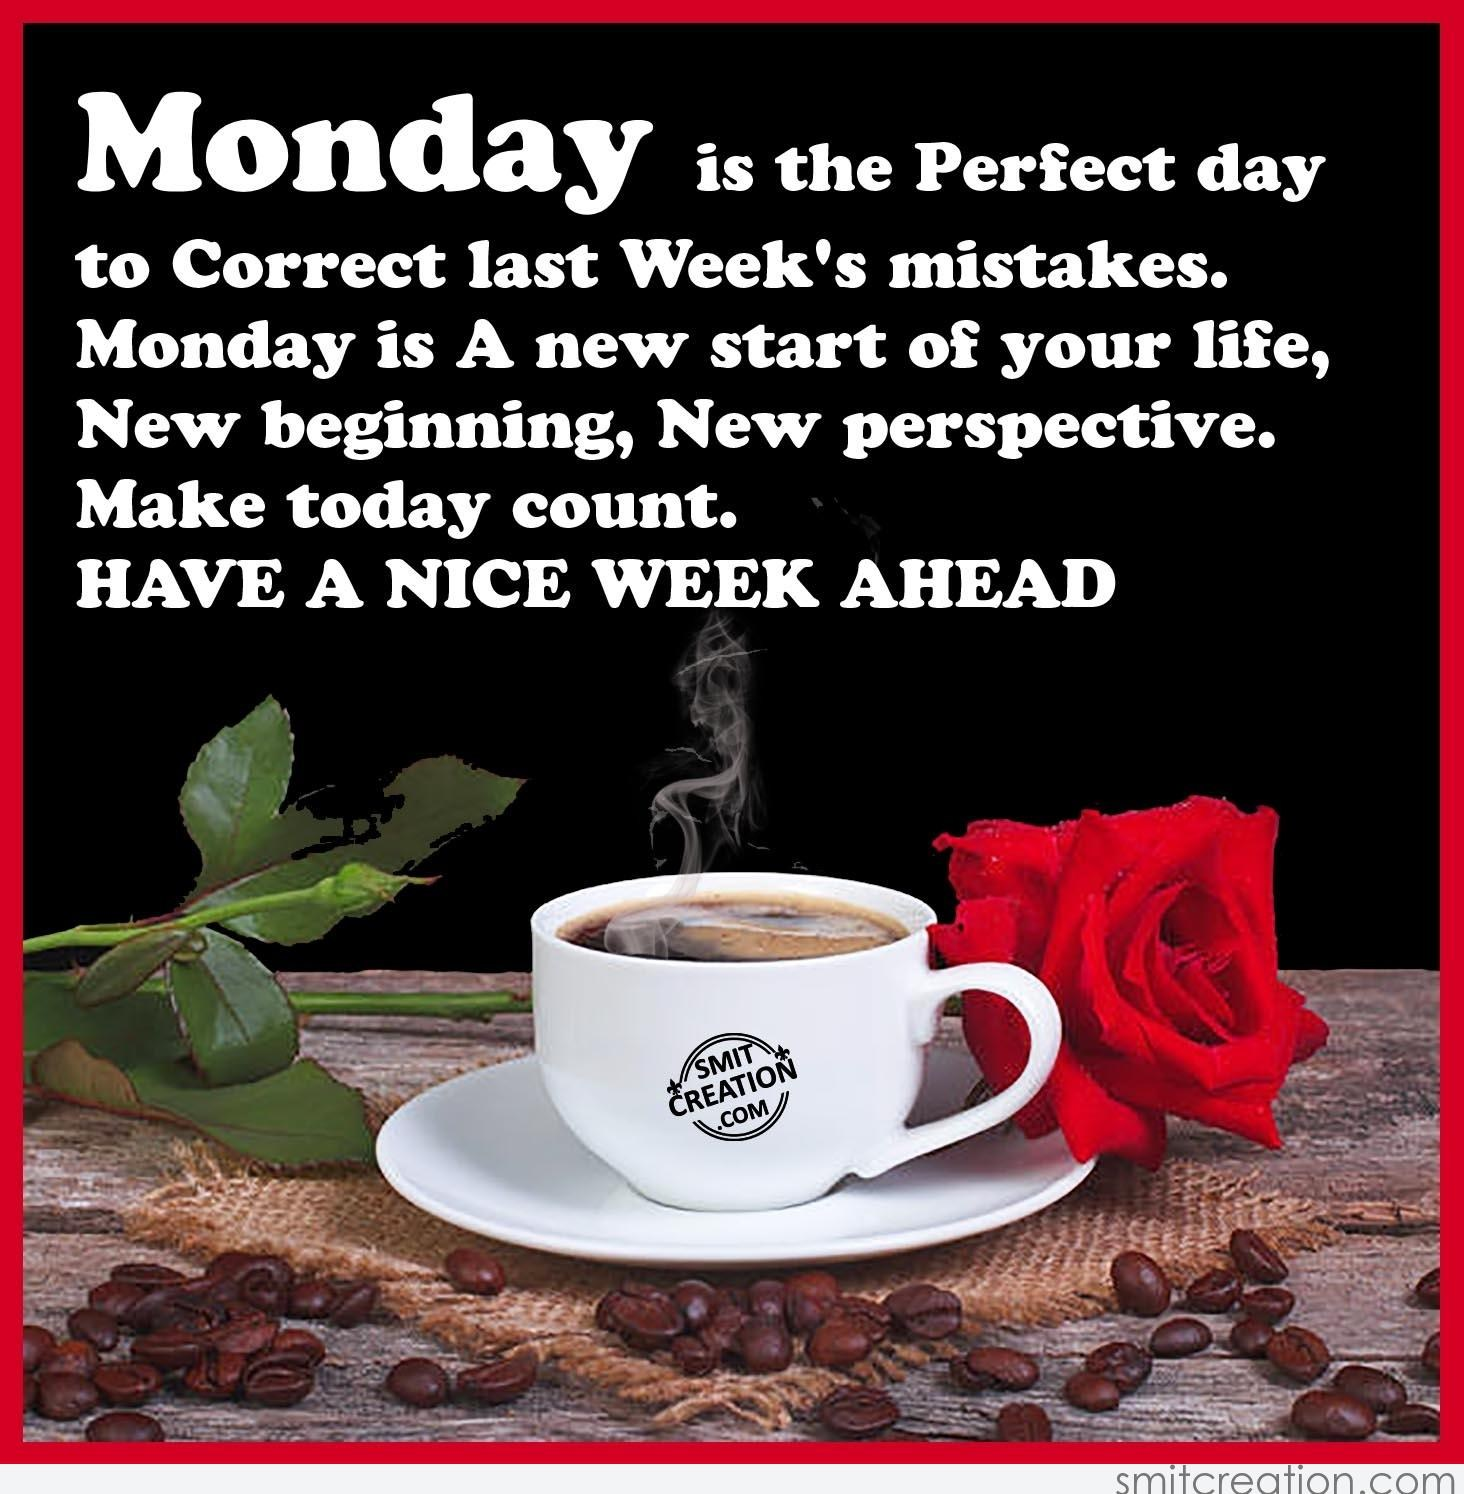 Monday pictures and graphics smitcreation page 4 monday is the perfect day to correct last weeks mistakes monday is a new start of your life new beginning new perspective make today count m4hsunfo